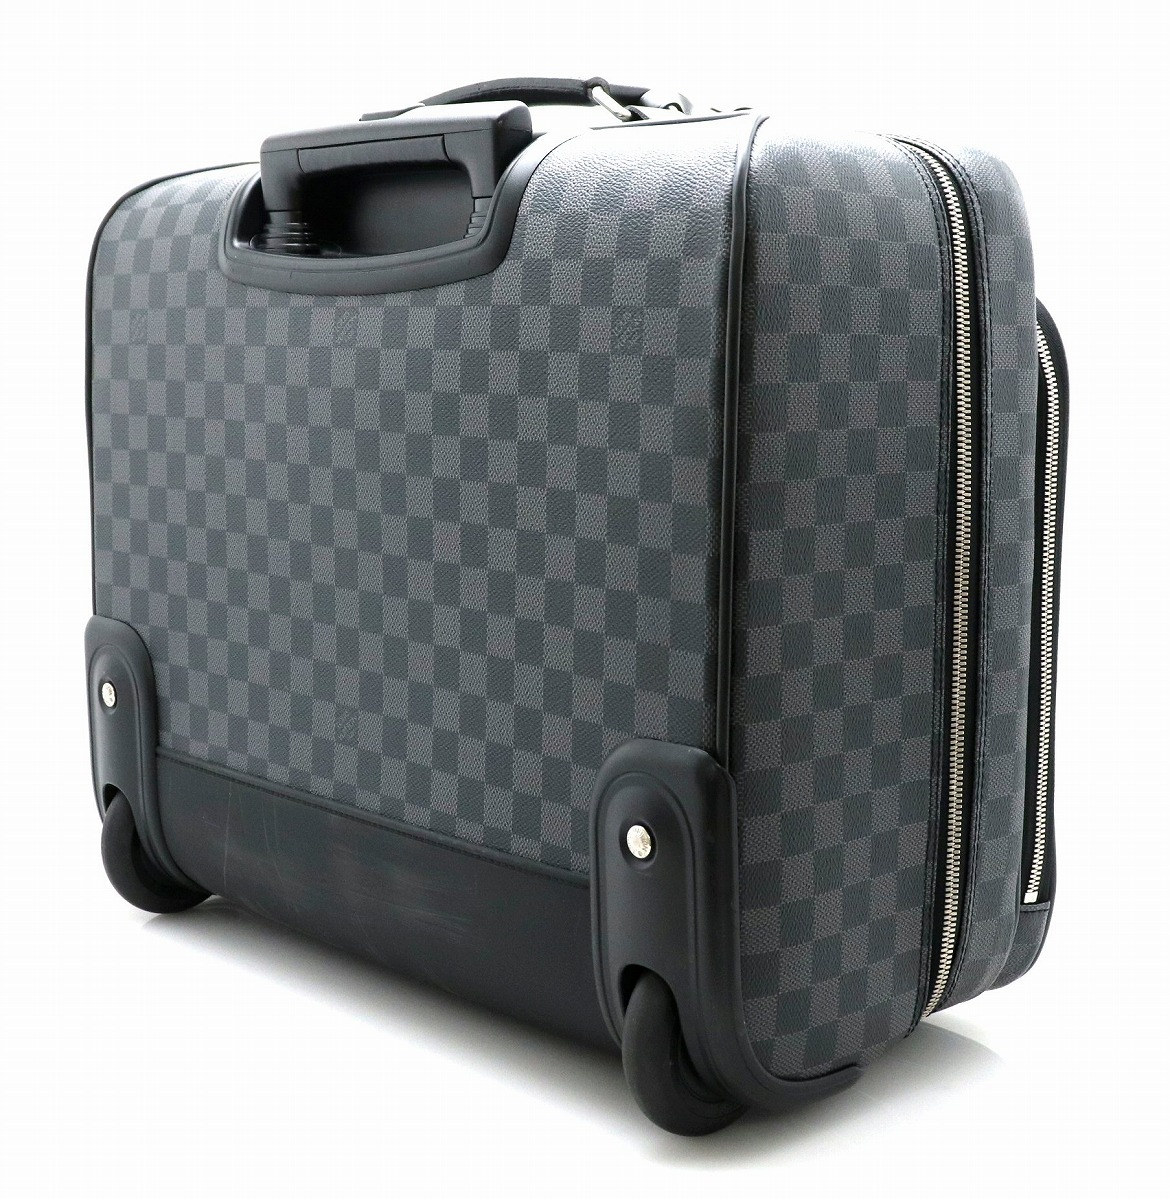 6afcee1d61 VUITTON ルイ ヴィトン ダミエグラフィット パイロットケース キャリーバッグ トロリーバッグ 旅行用 トラベルバッグ N23206  【中古】【k】 【バッグ】LOUIS-スーツ ...